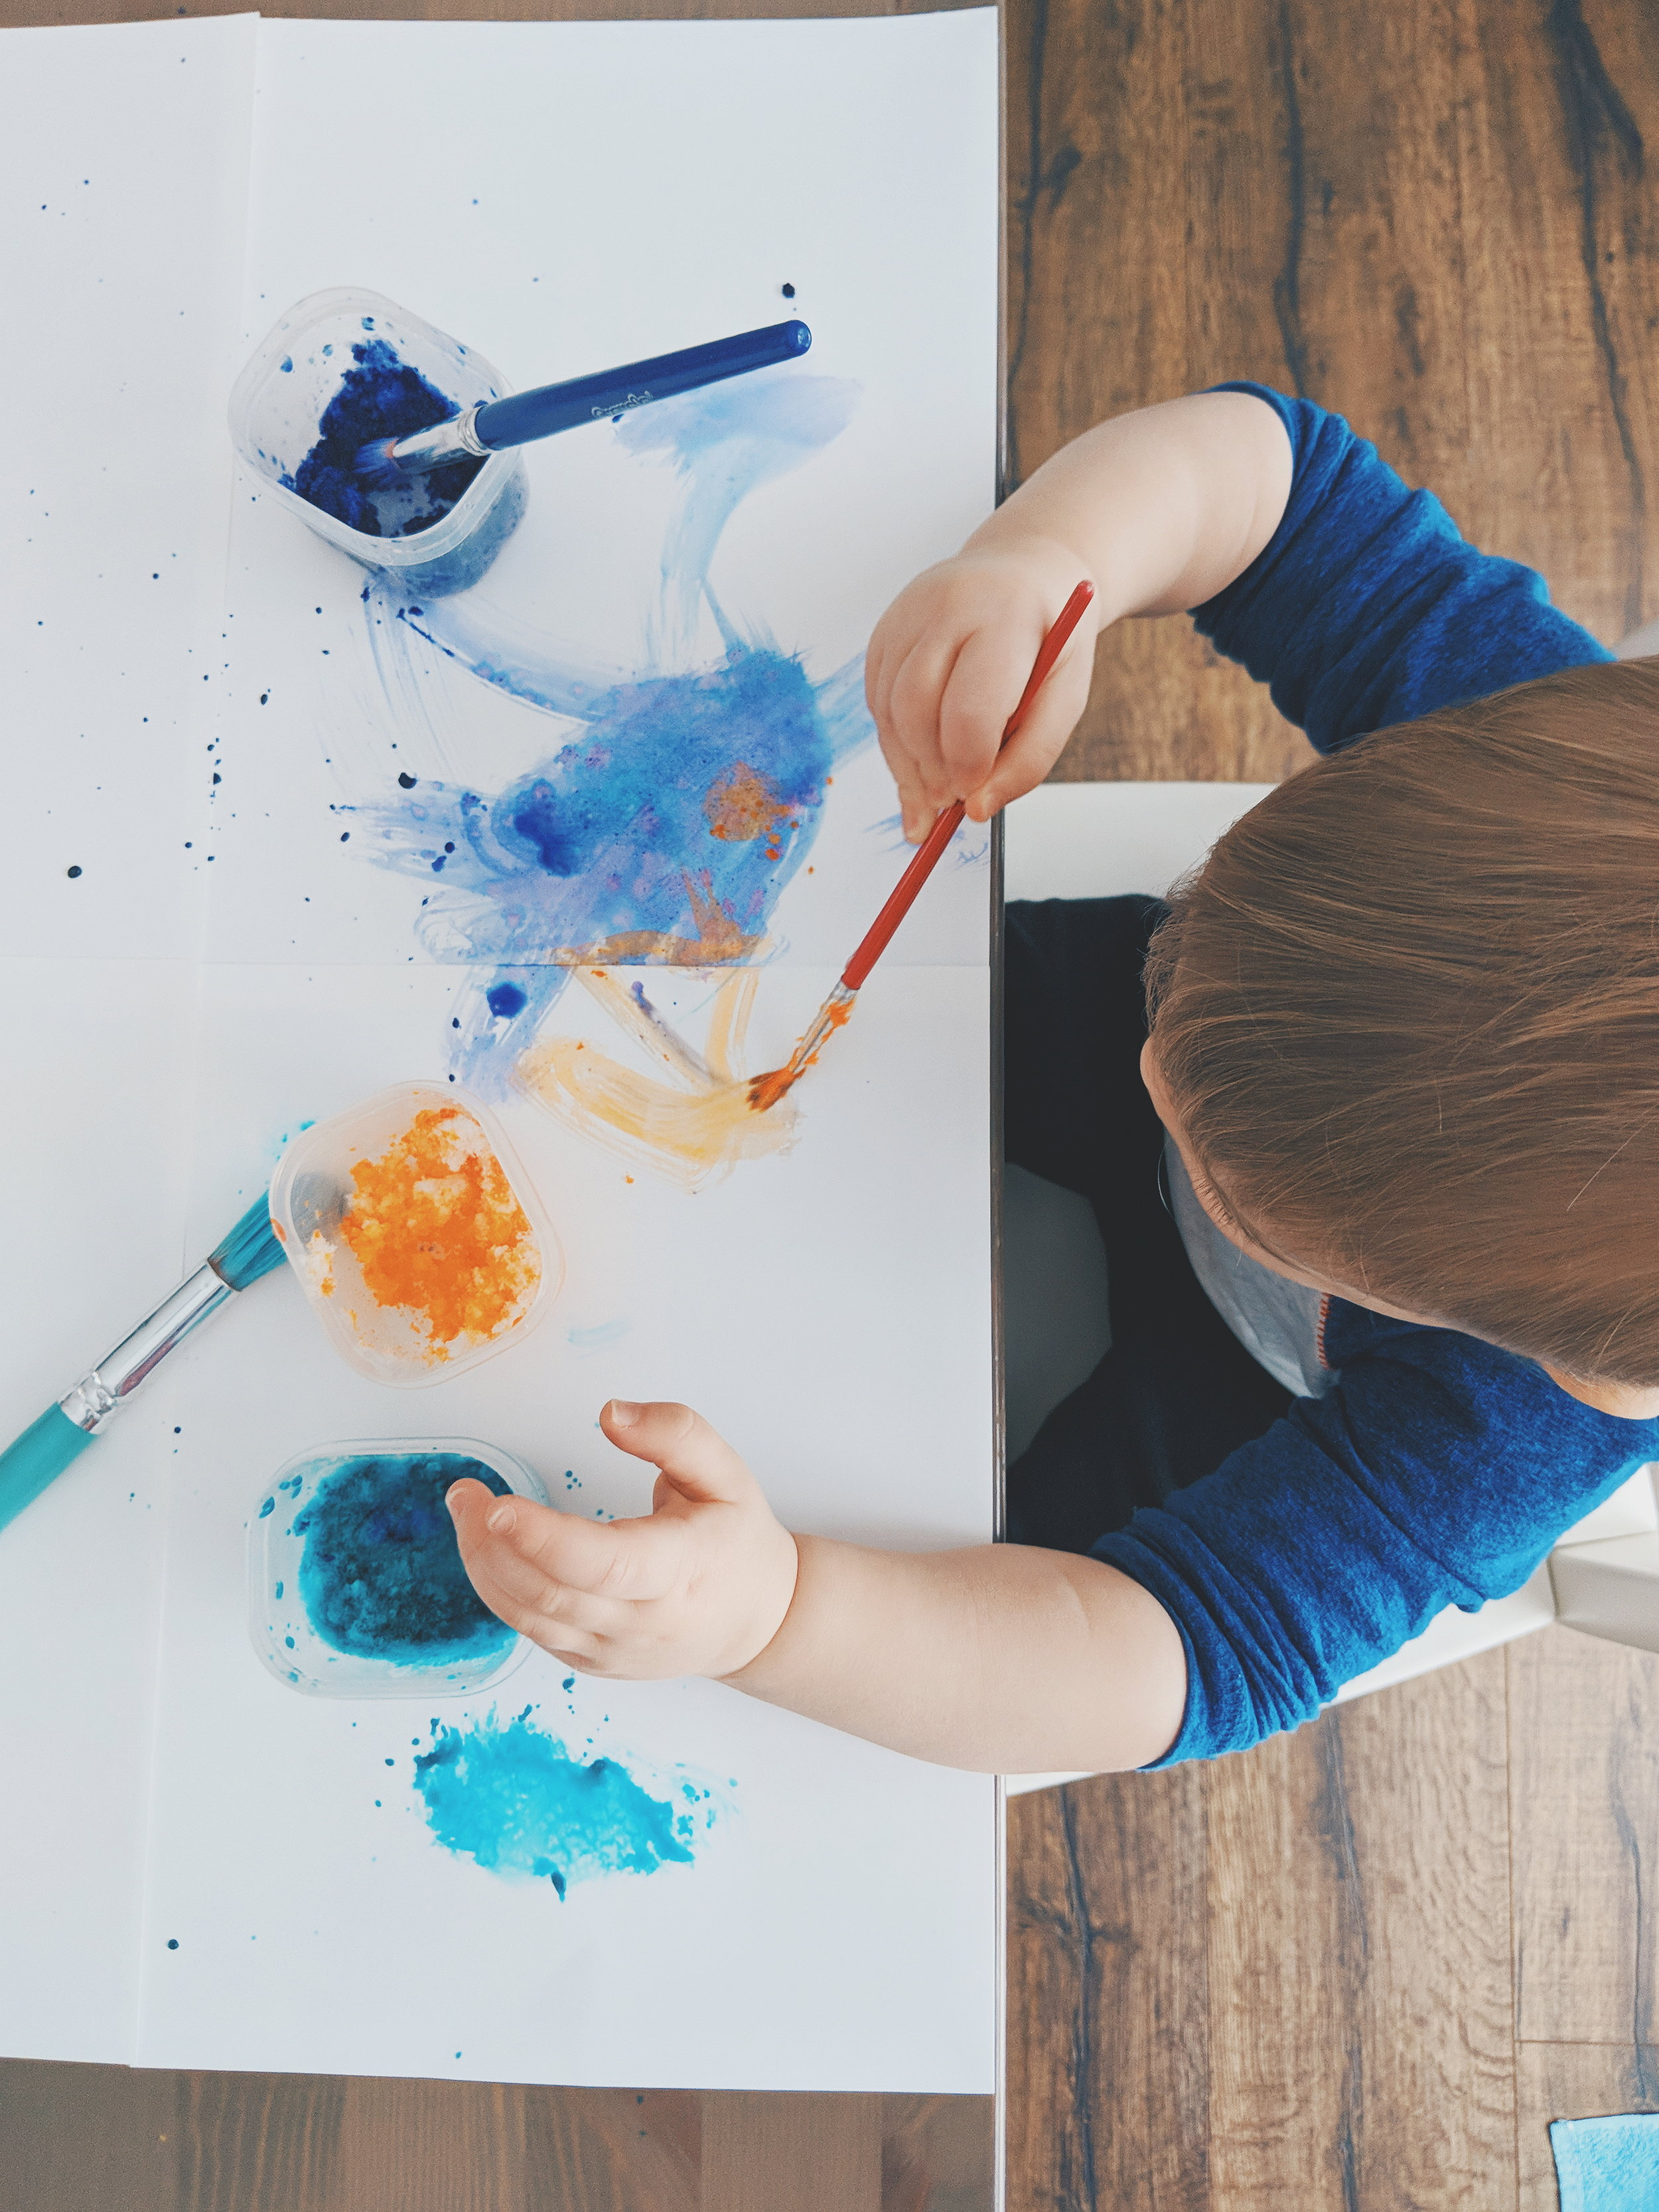 Painting With Snow winter activity for toddlers www.momentswithmiss.com 4.jpg